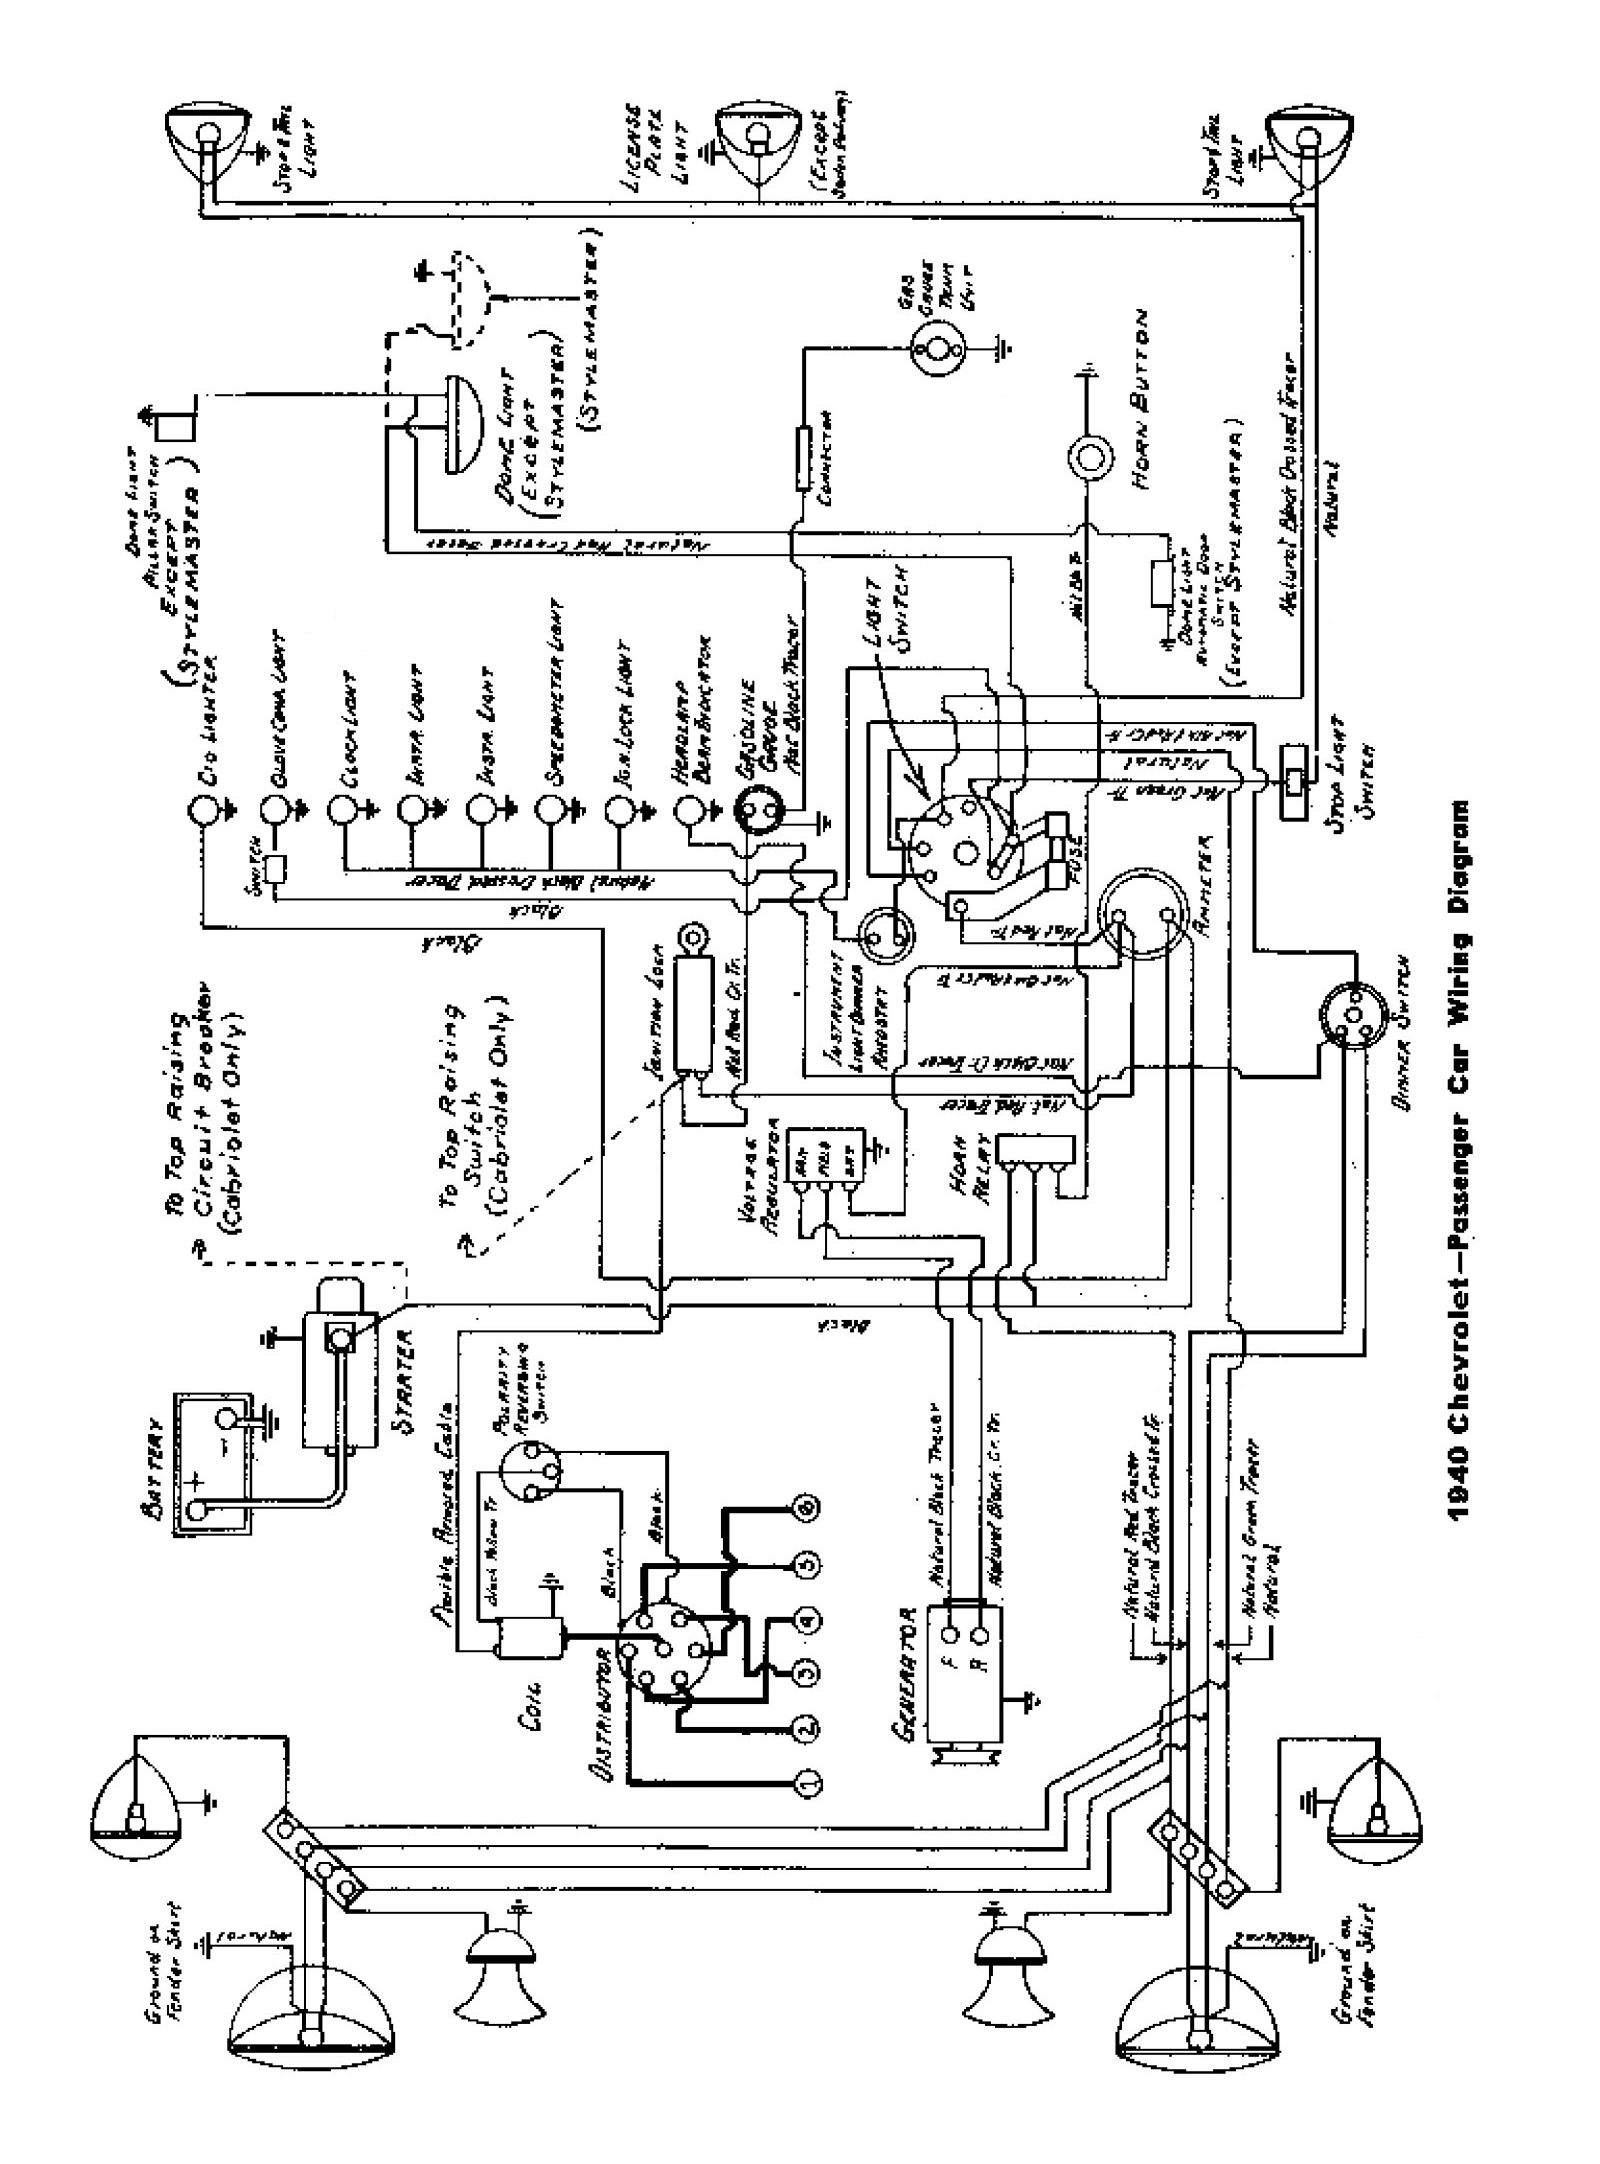 Dodge Truck Wiring Diagrams. Dodge. Wiring Diagrams Instructions